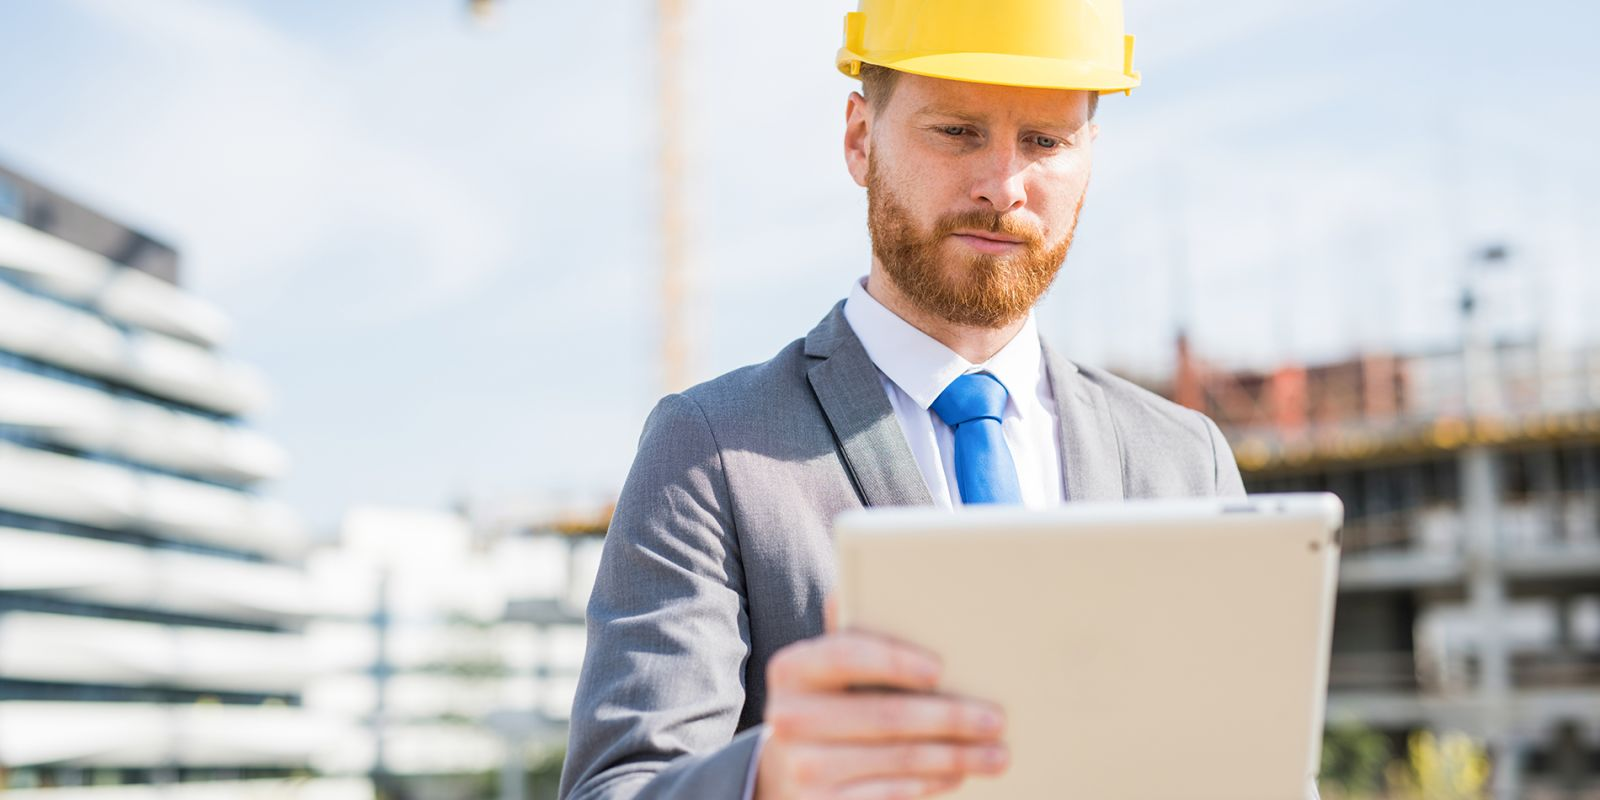 Picture of a man with a hard hat on looking at an iPad on a construction site on the health and safety video production page.